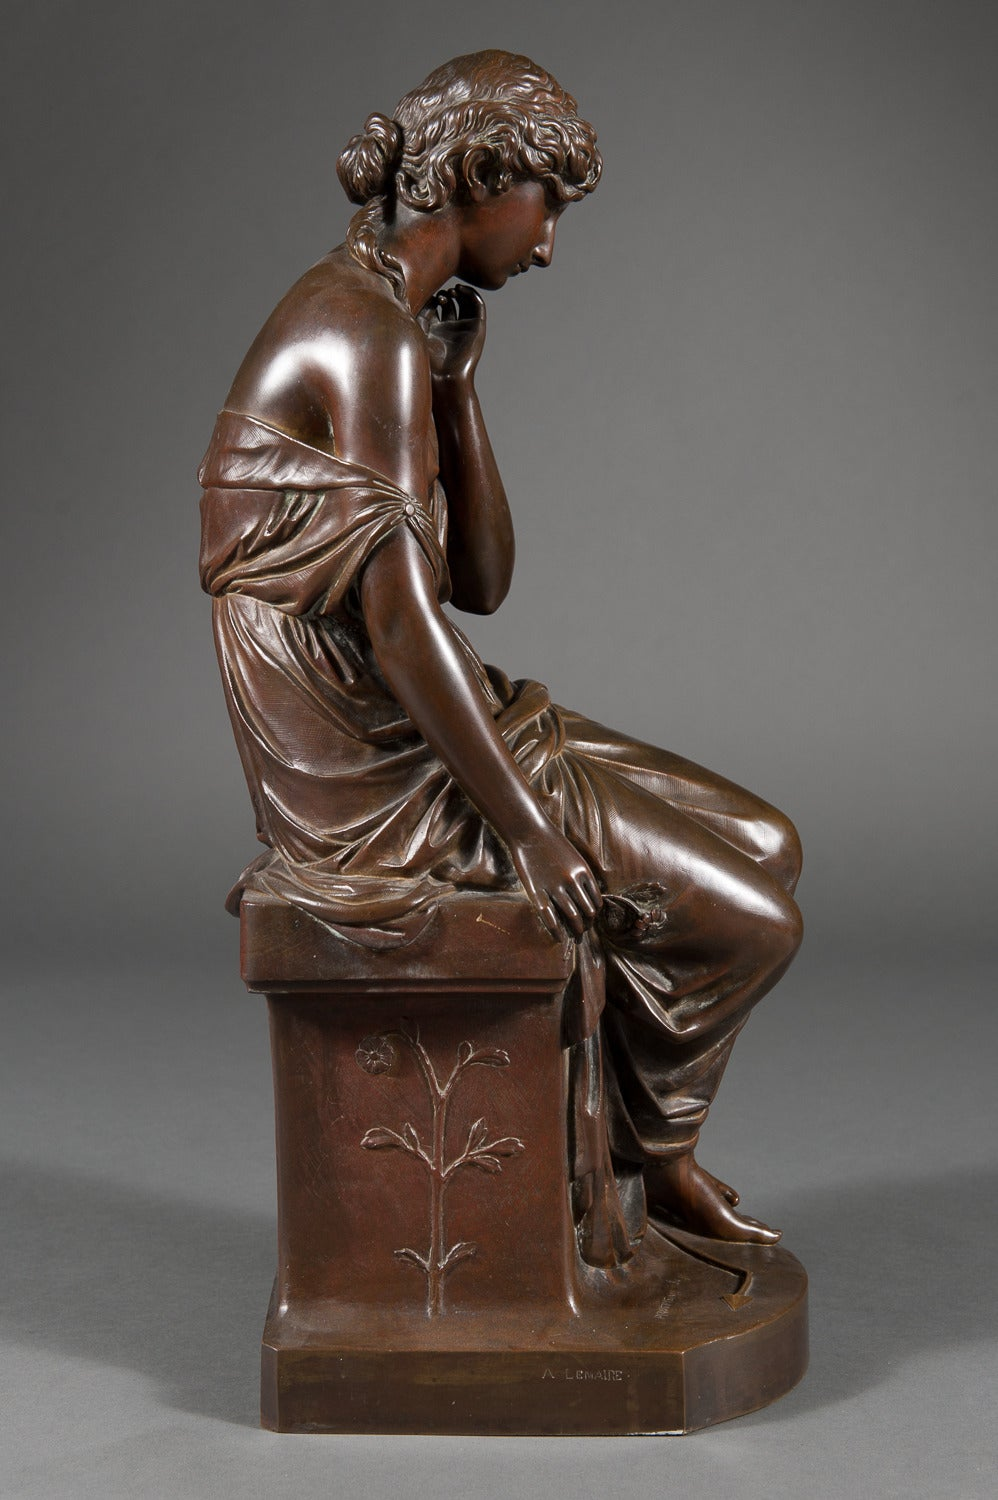 19th Century French Patinated Bronze Figure of a Women with a Lillie In Excellent Condition For Sale In Los Angeles, CA